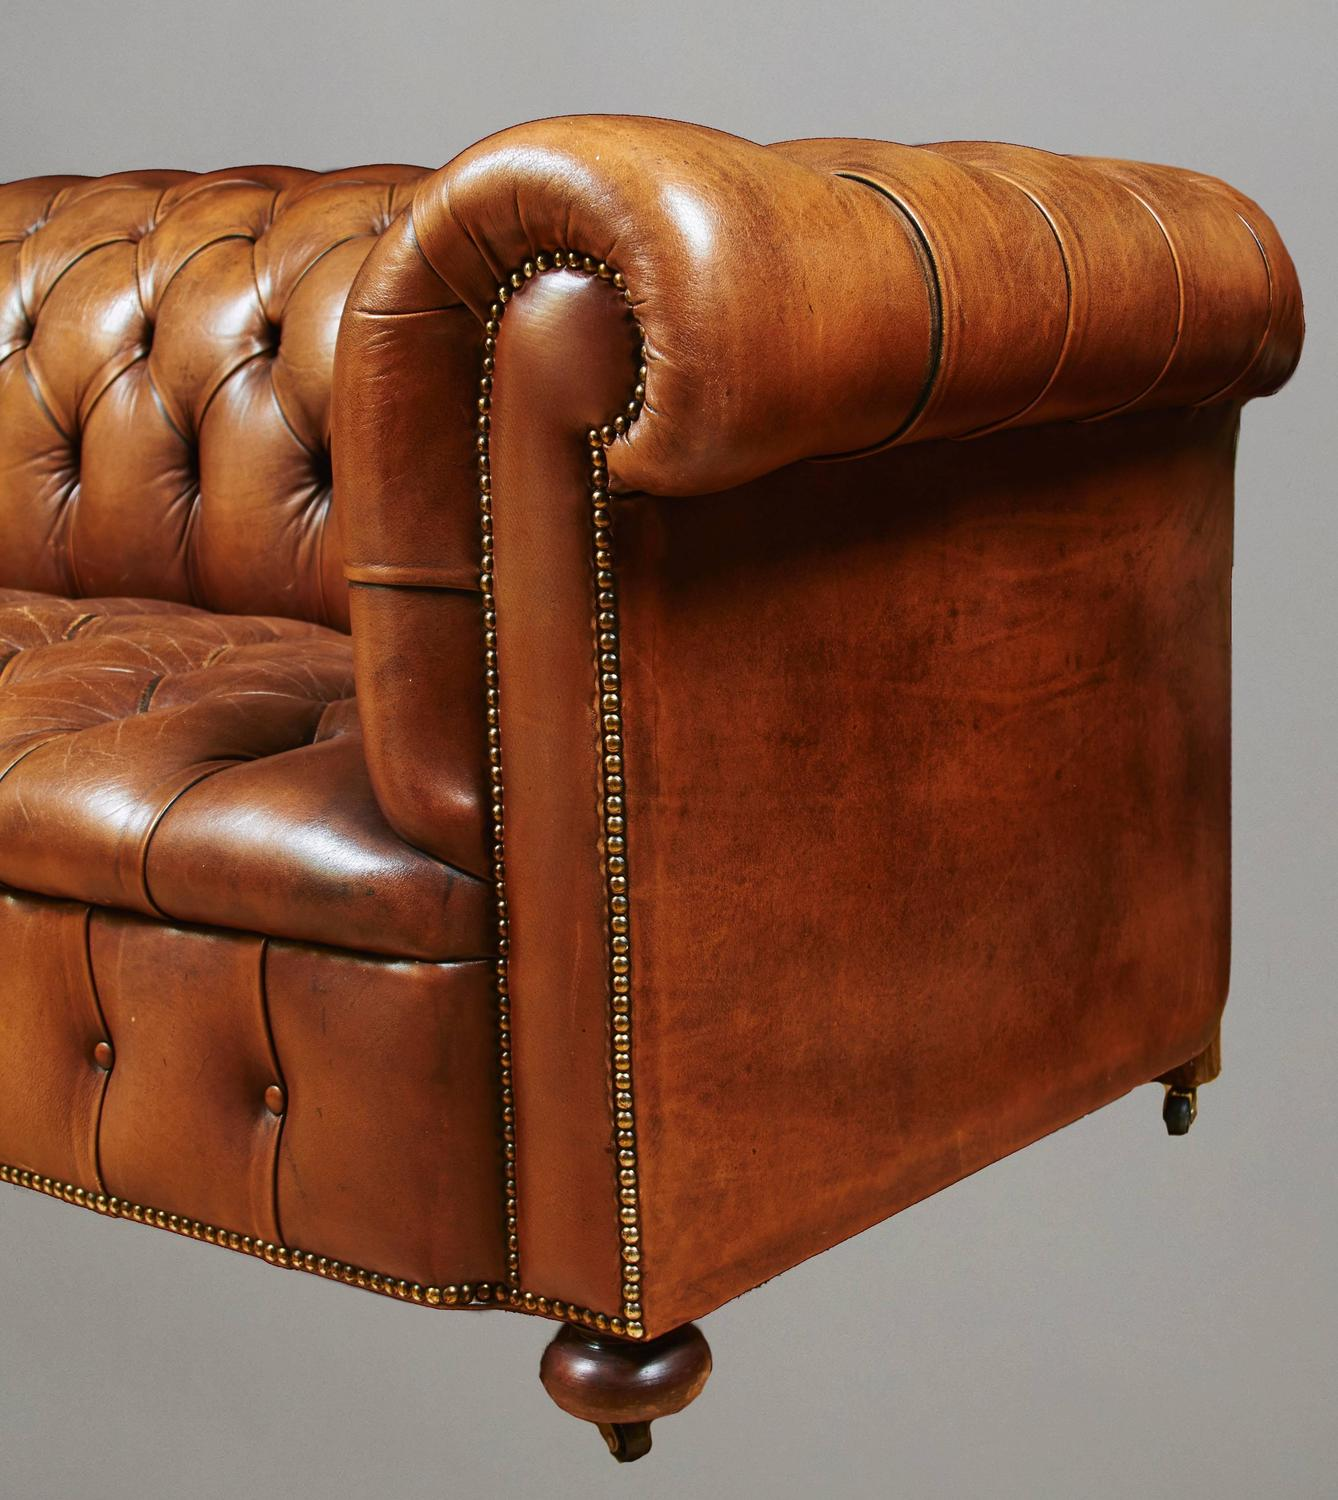 tufted leather sofa with nailhead trim at 1stdibs